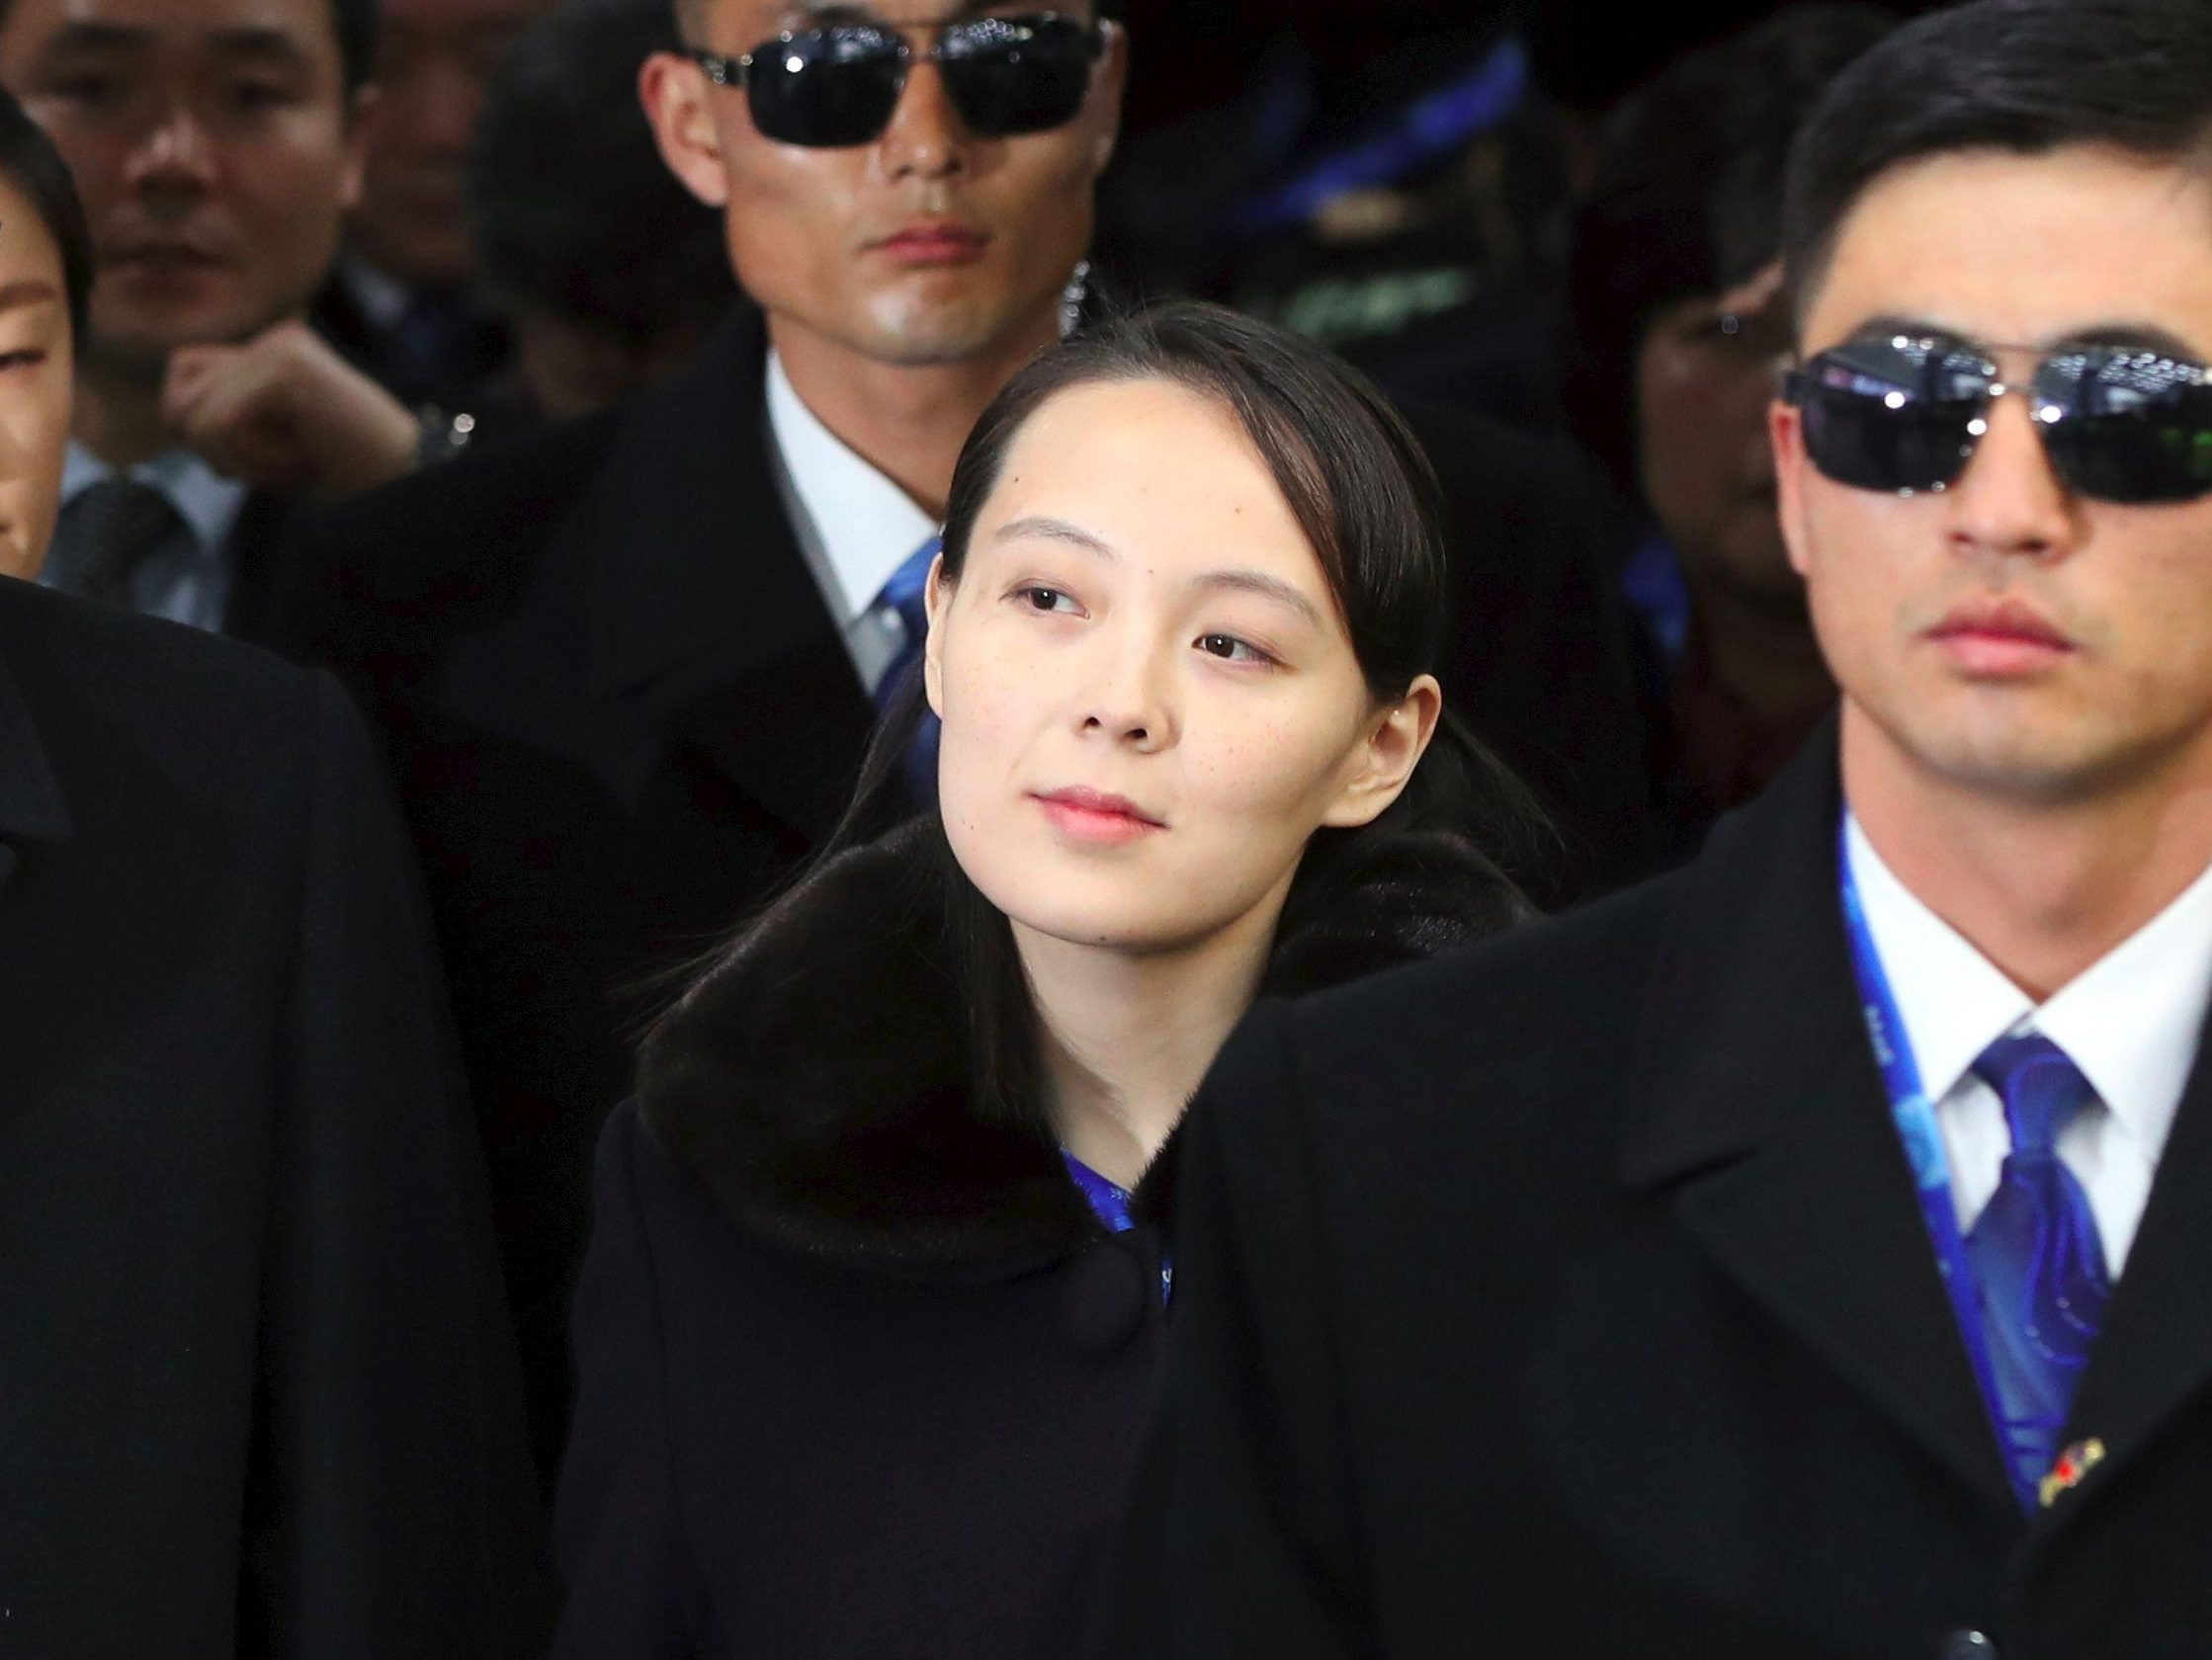 She was groomed for a young age to lead North Korea.